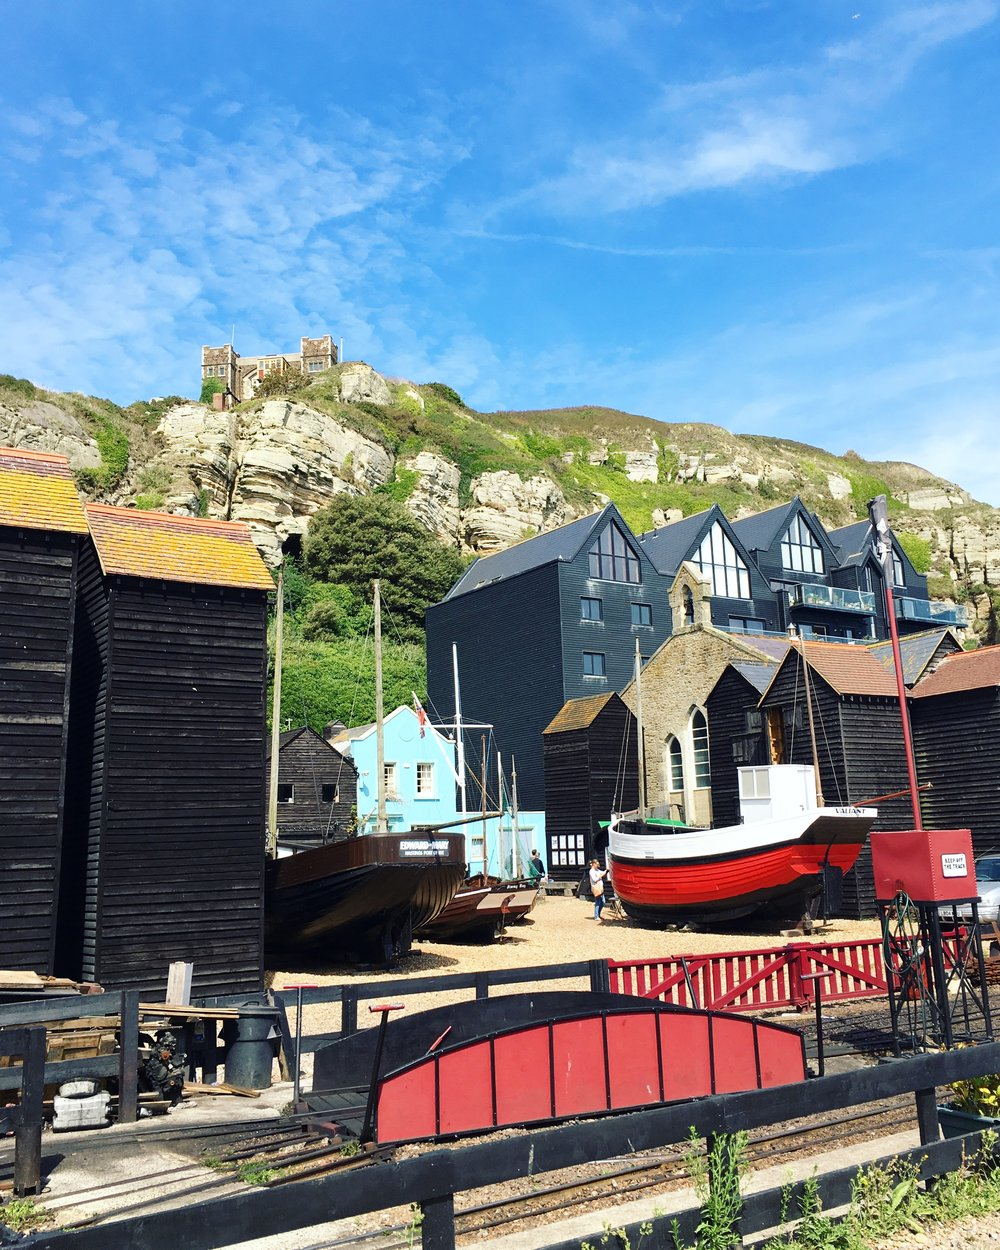 This of part of Hastings Old Town is one of my faves. I so love the traditional old Fisherman Huts that are still there, weathered from the sea and holding so much history. And that blue building peeking out makes my heart sing!